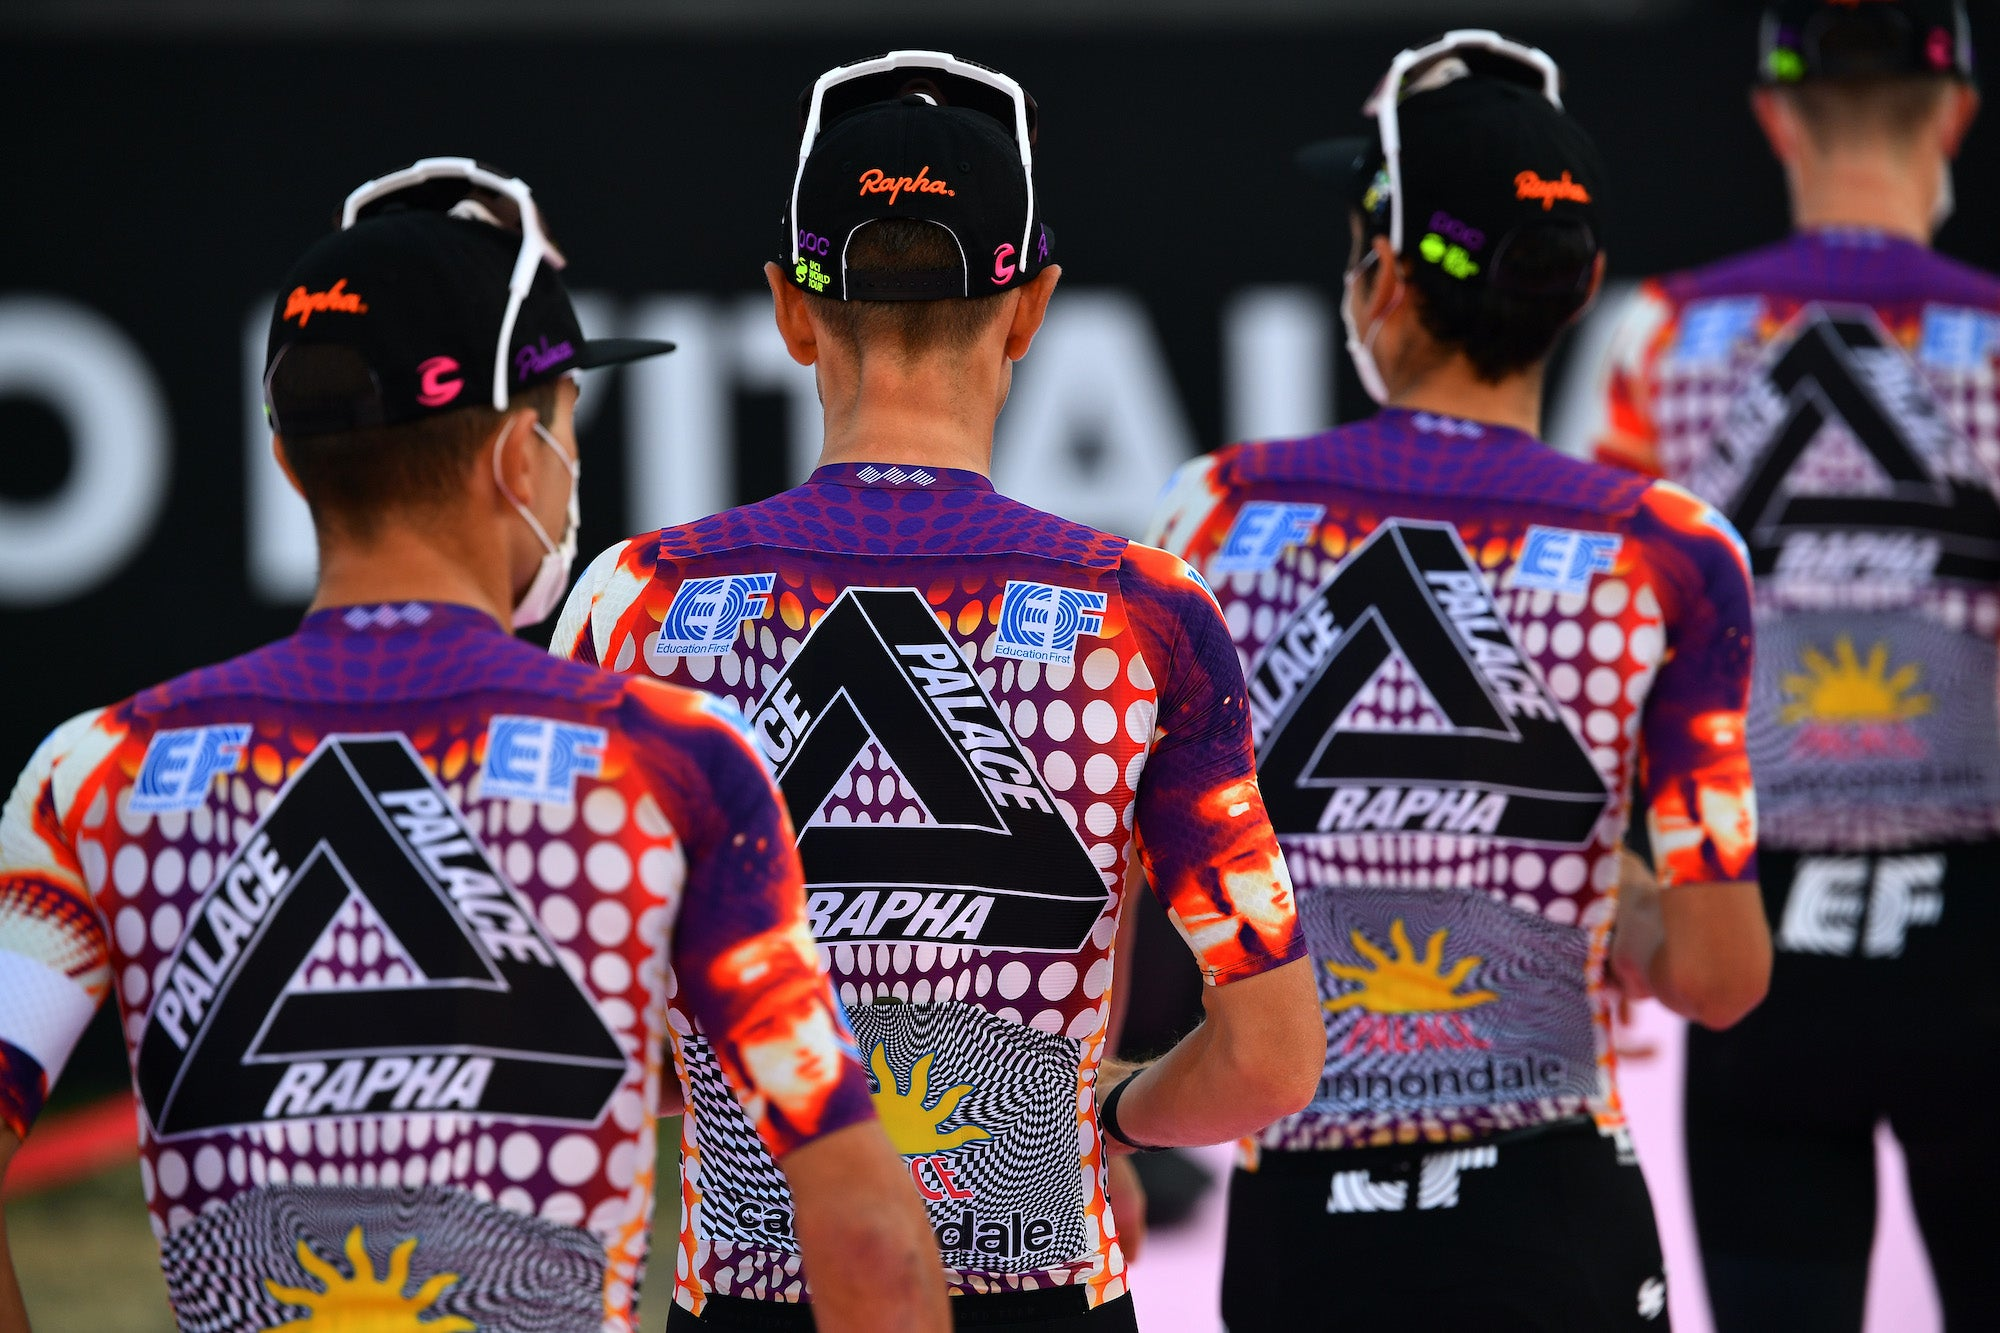 EF Pro Cycling fined for 'non compliant clothing' at Giro d'Italia ...